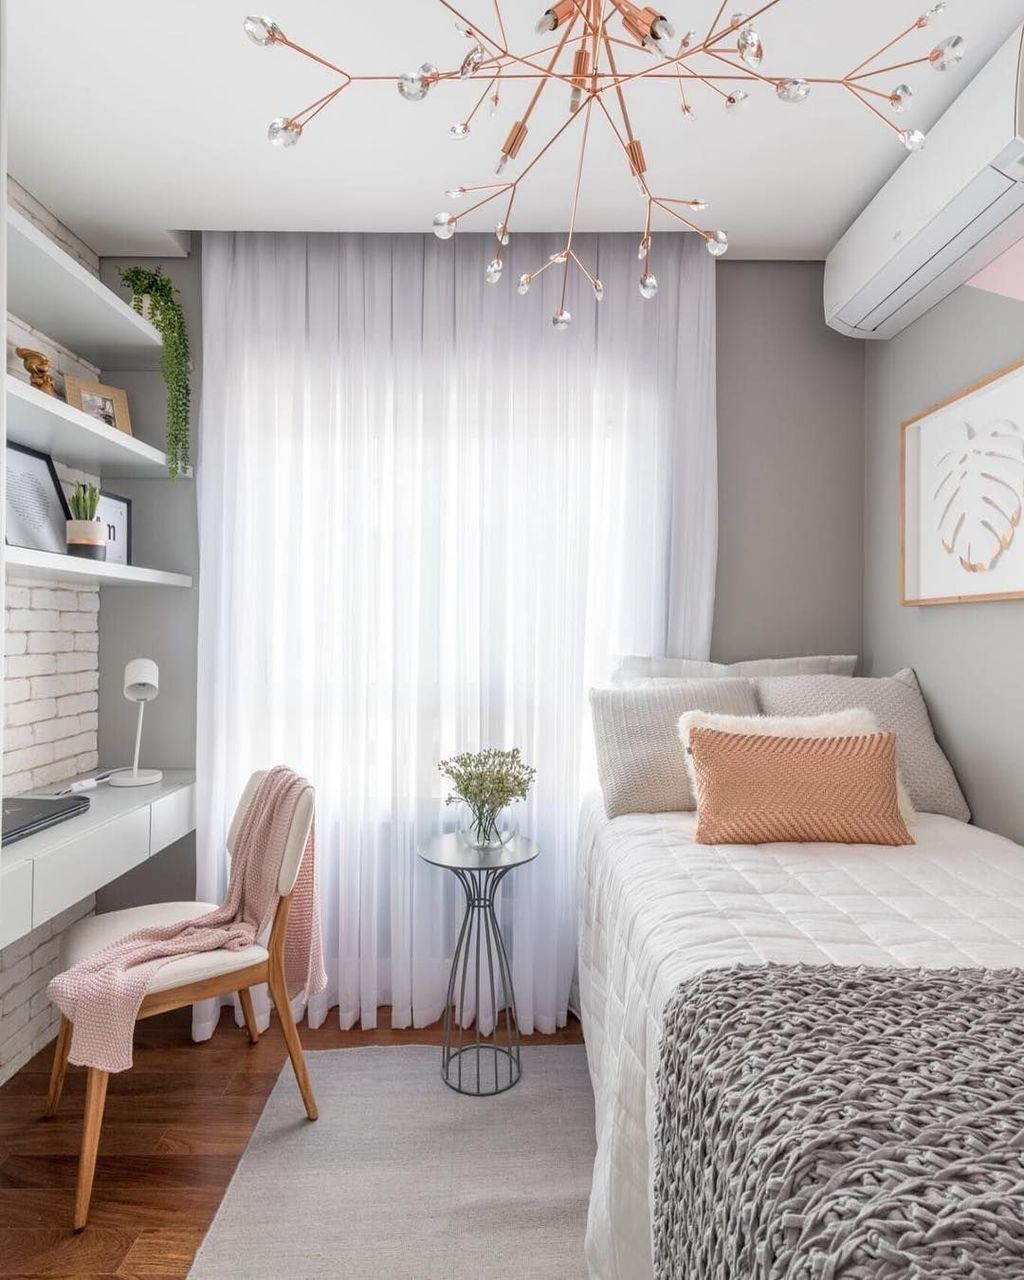 20+ Splendid Small Bedroom Ideas For Teens images